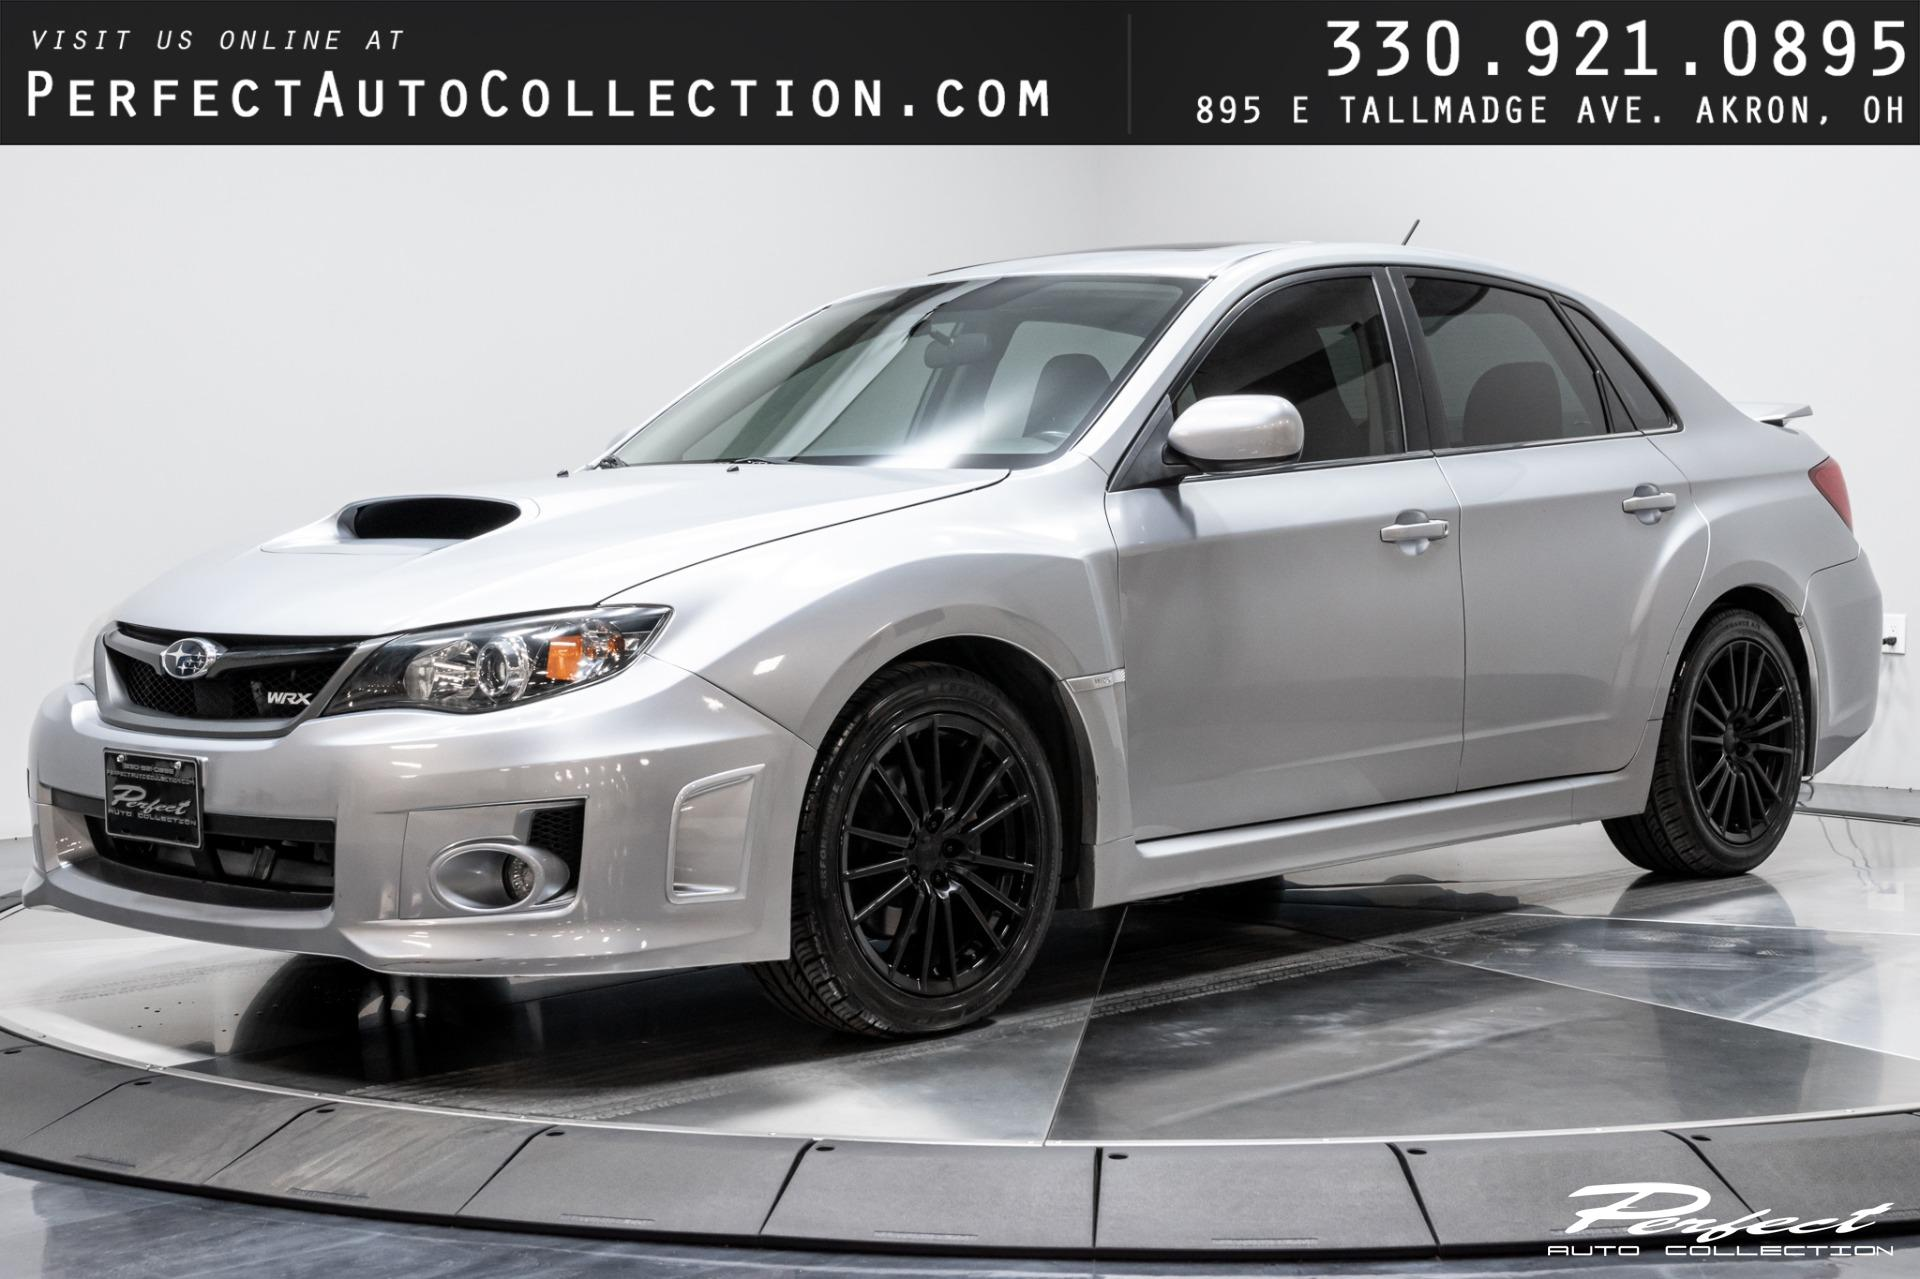 Used 2014 Subaru Impreza WRX Limited for sale Sold at Perfect Auto Collection in Akron OH 44310 1